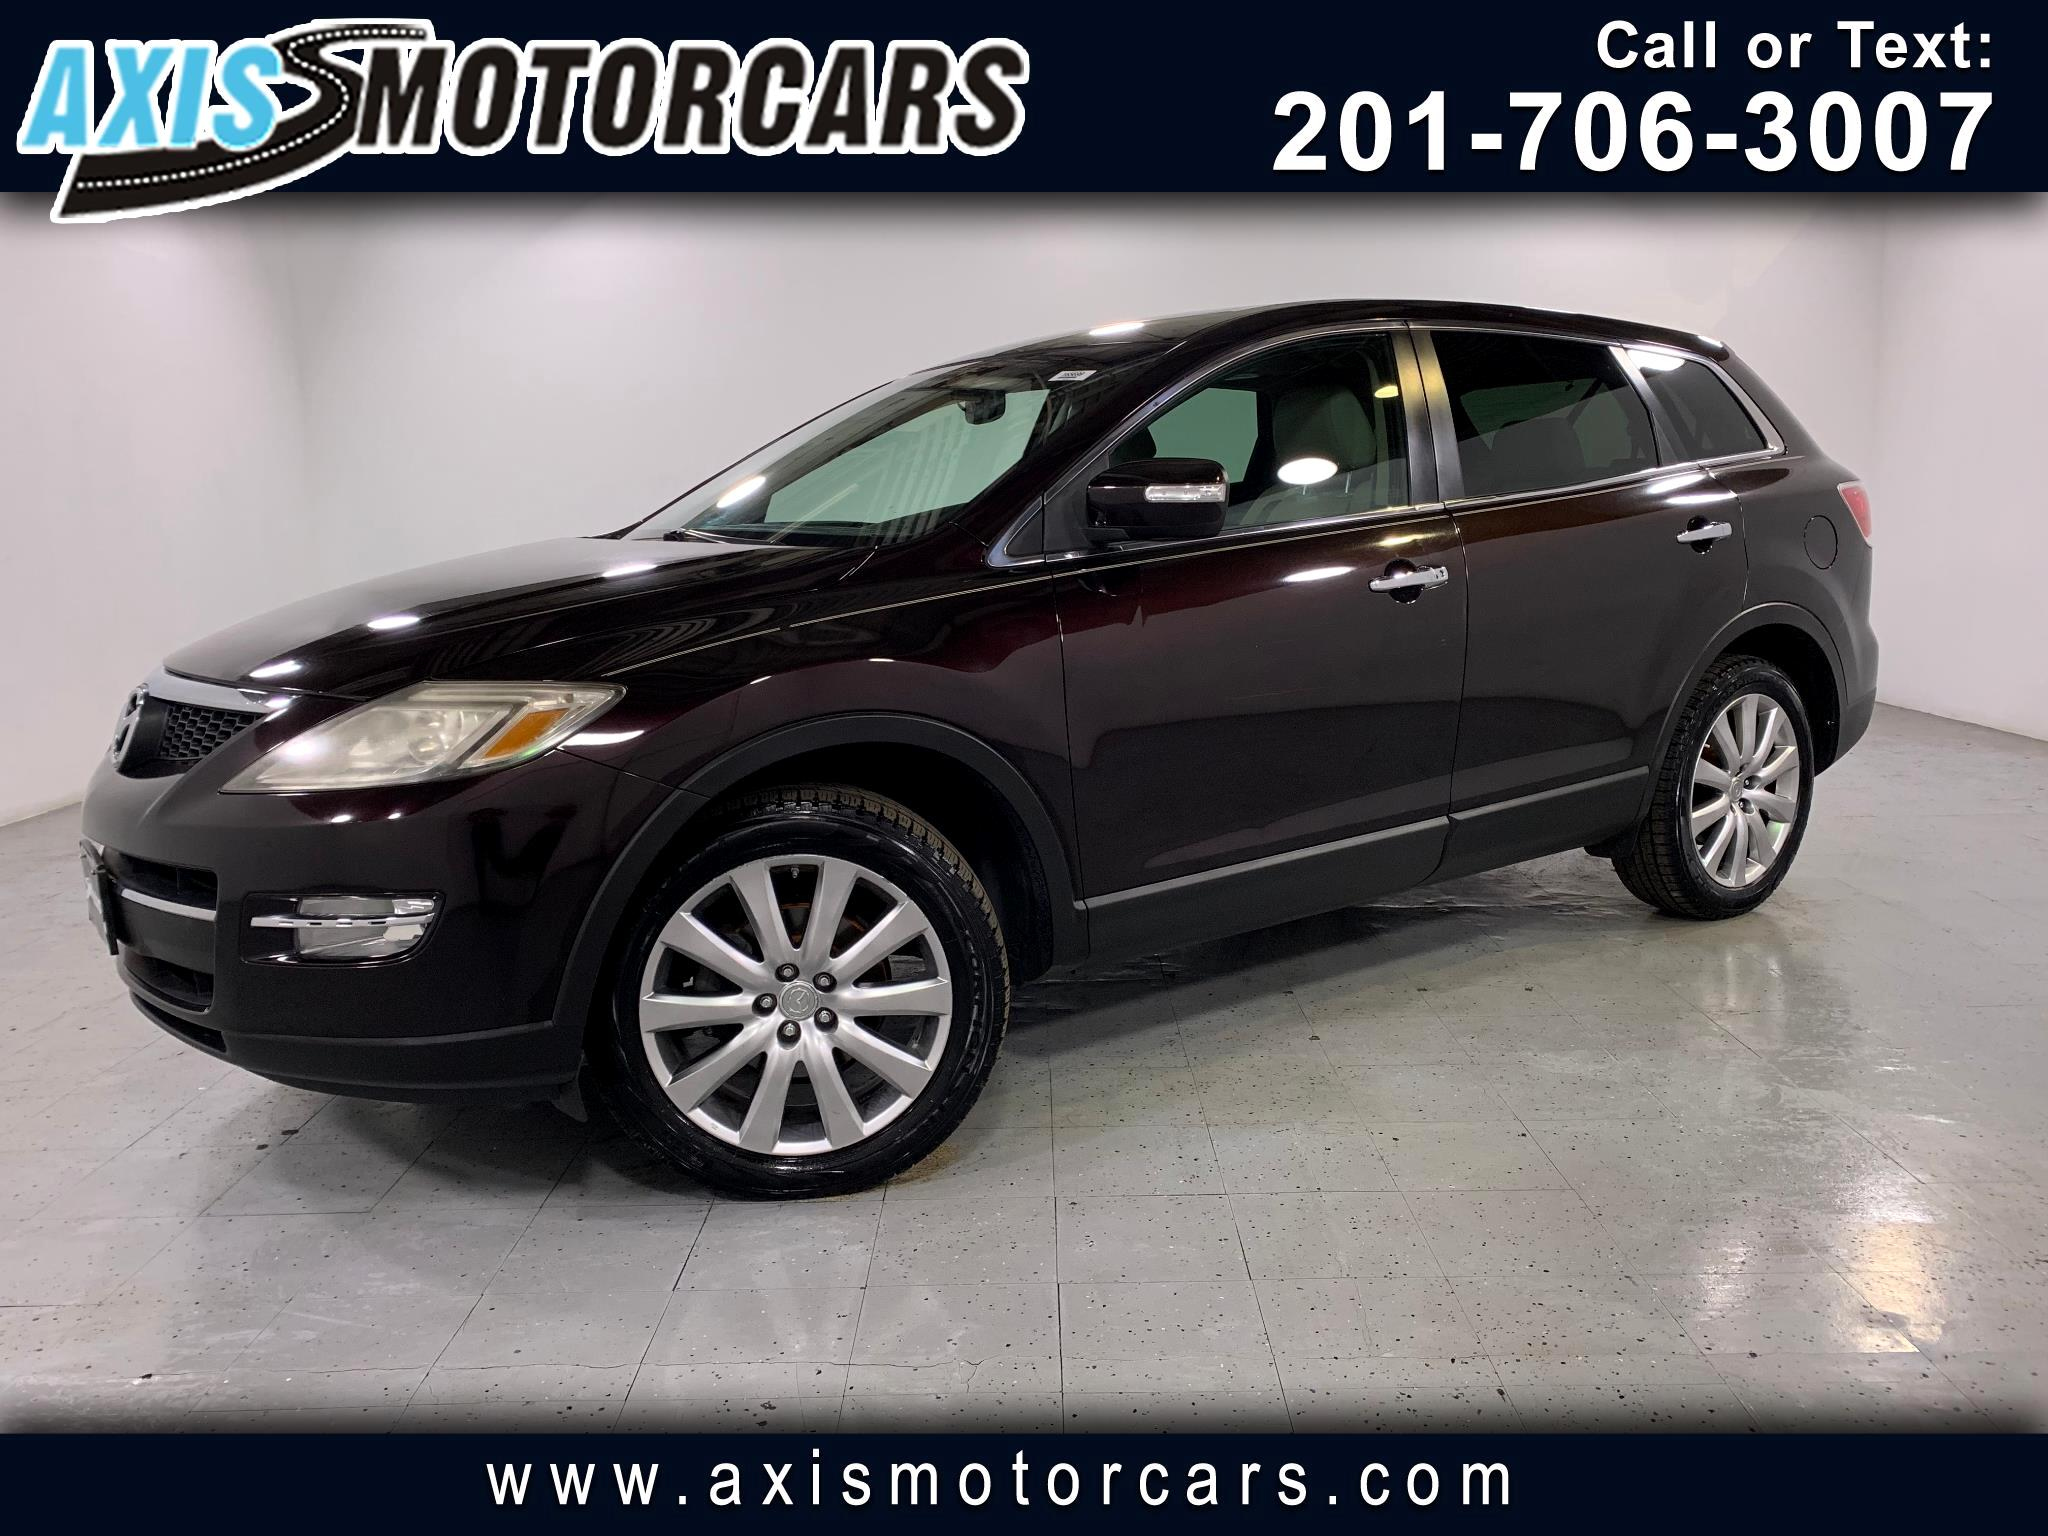 2009 Mazda CX-9 Grand Touring w/BoSE Sound Rear Entertainment